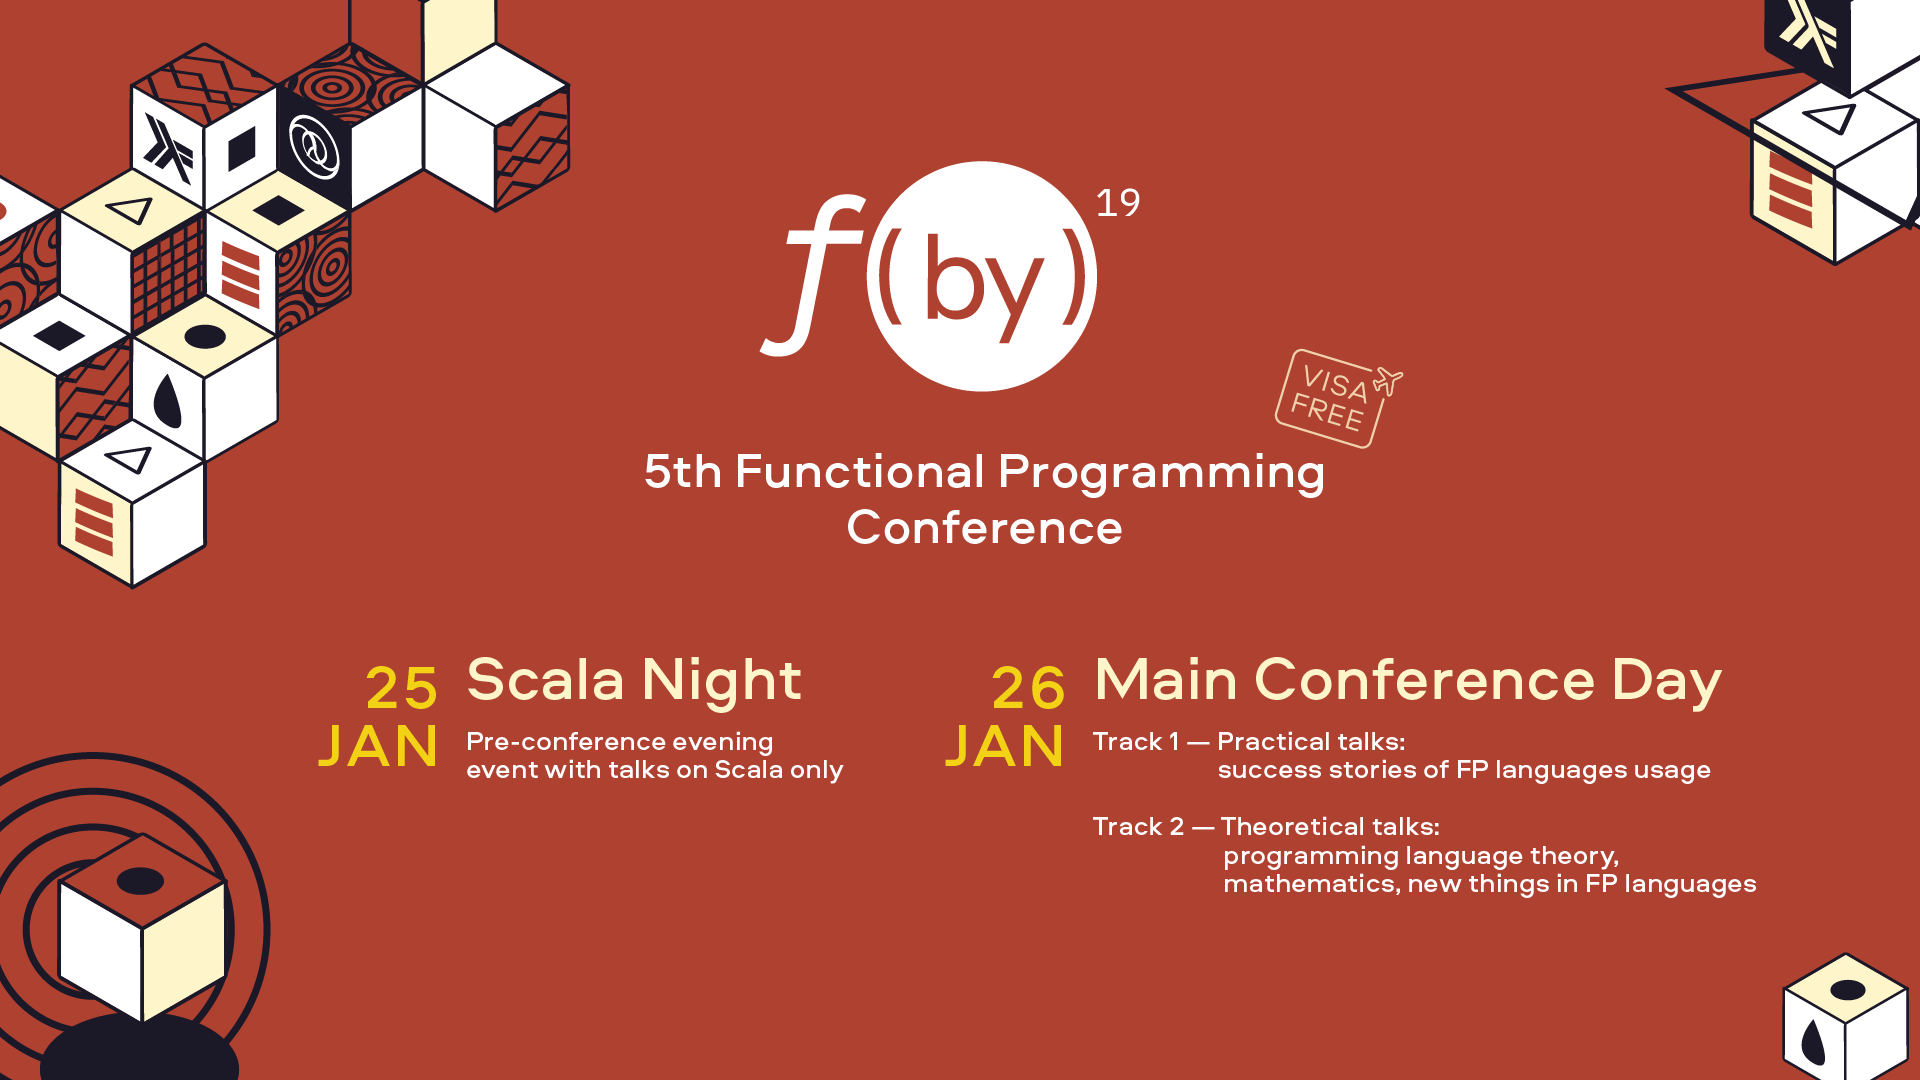 fby 2019 Conference on functional programming  Scala